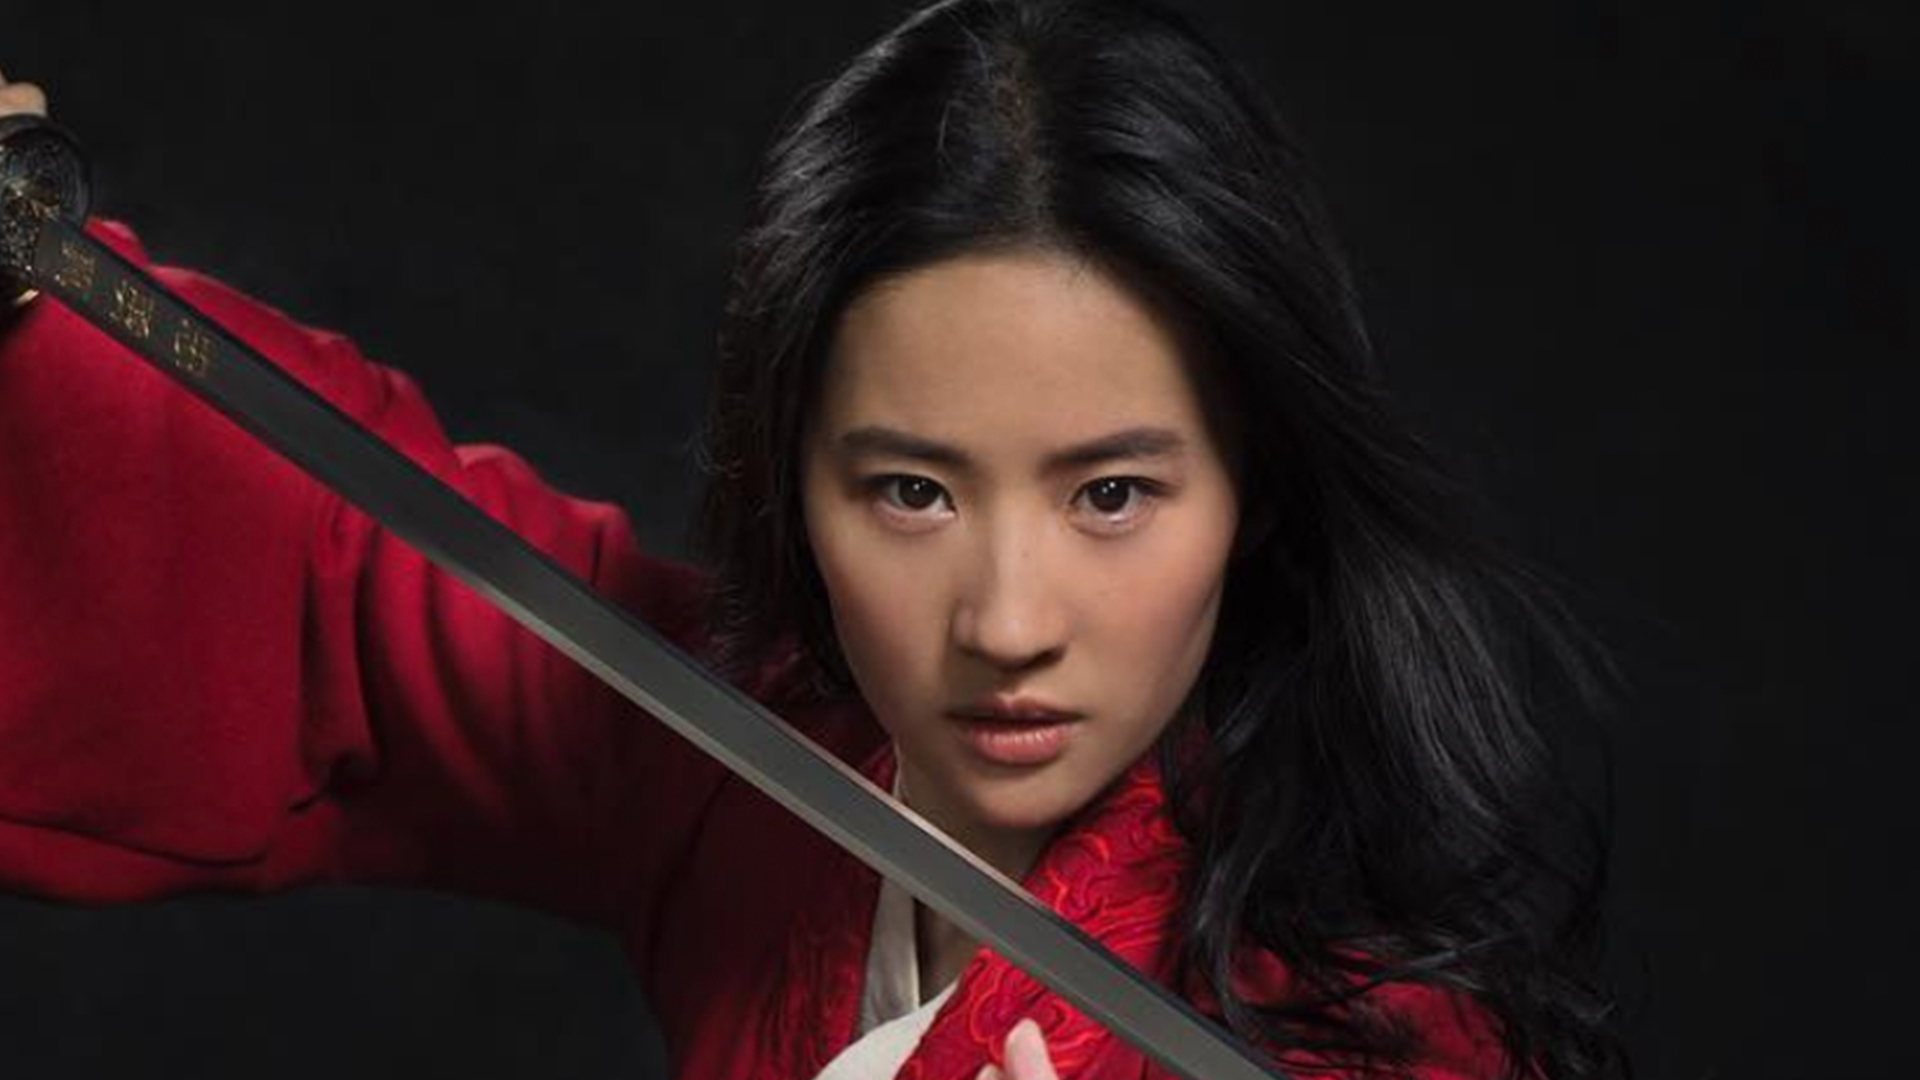 The First Trailer For Disney S Live Action Mulan Is Here And It S Epic Access